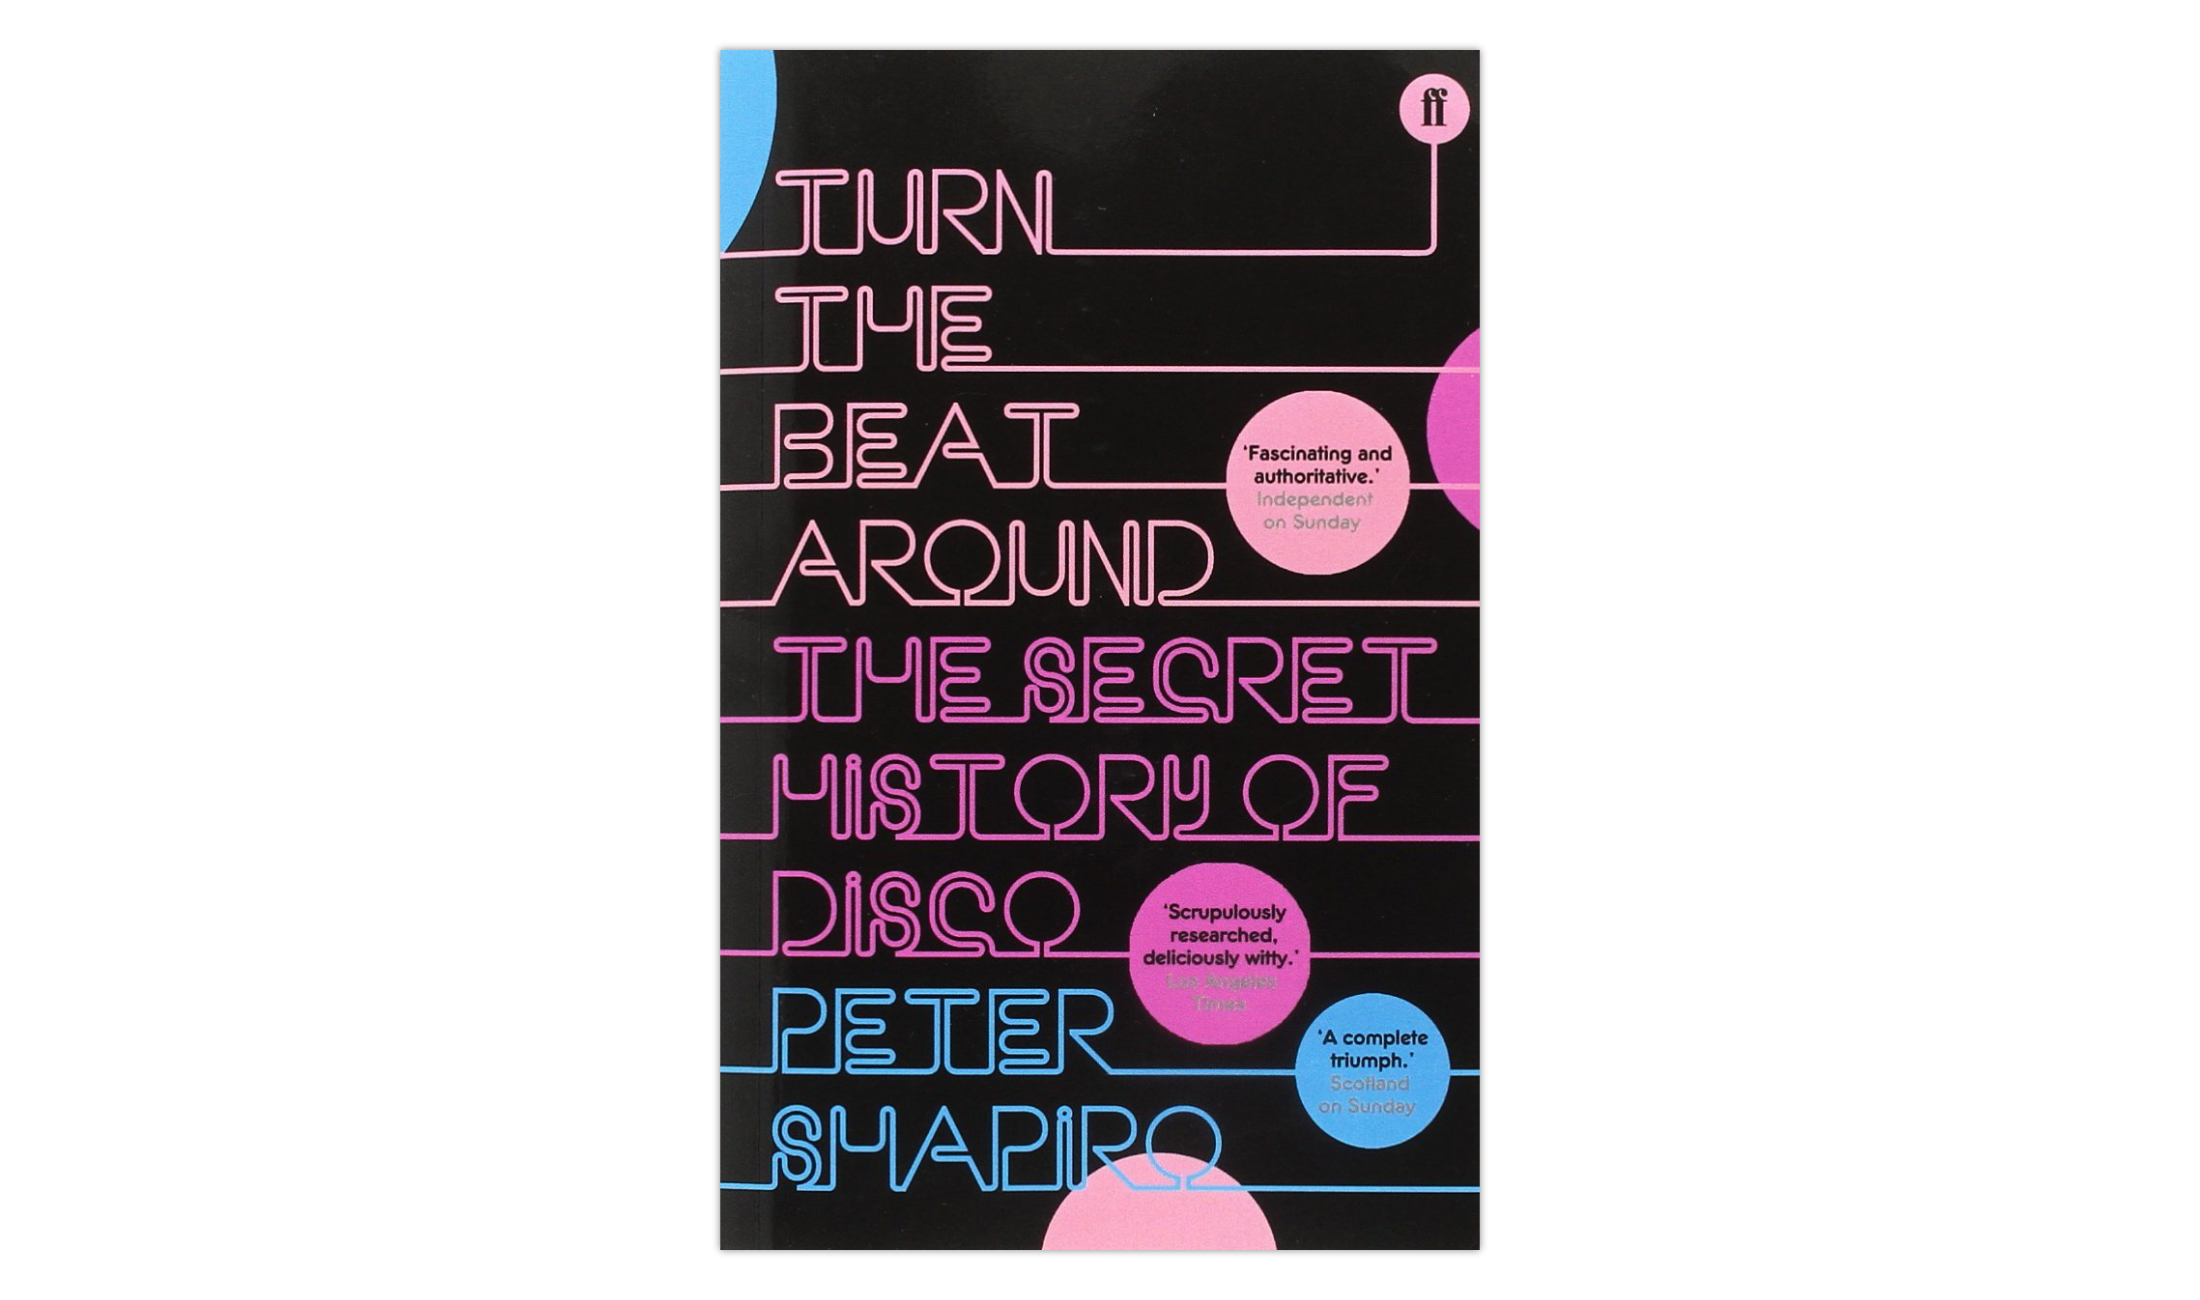 Turn the Beat Around. The Secret History of Disco (2005) von Peter Shapiro.